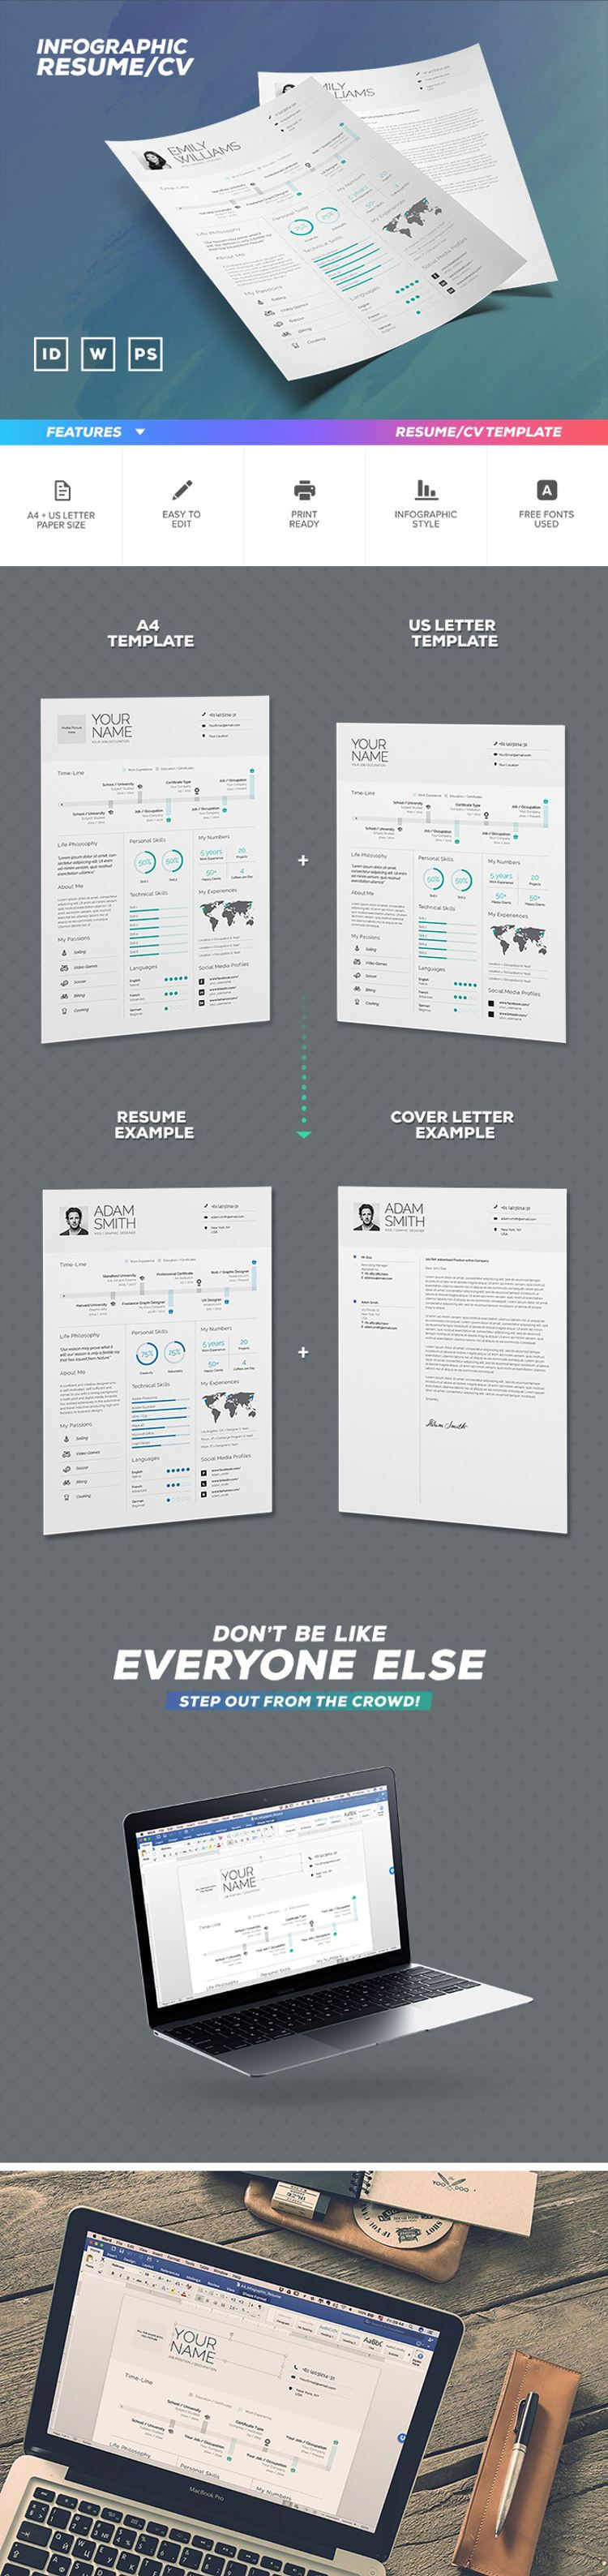 Free Infographic Resume Template | CV | Pinterest | Infographic ...